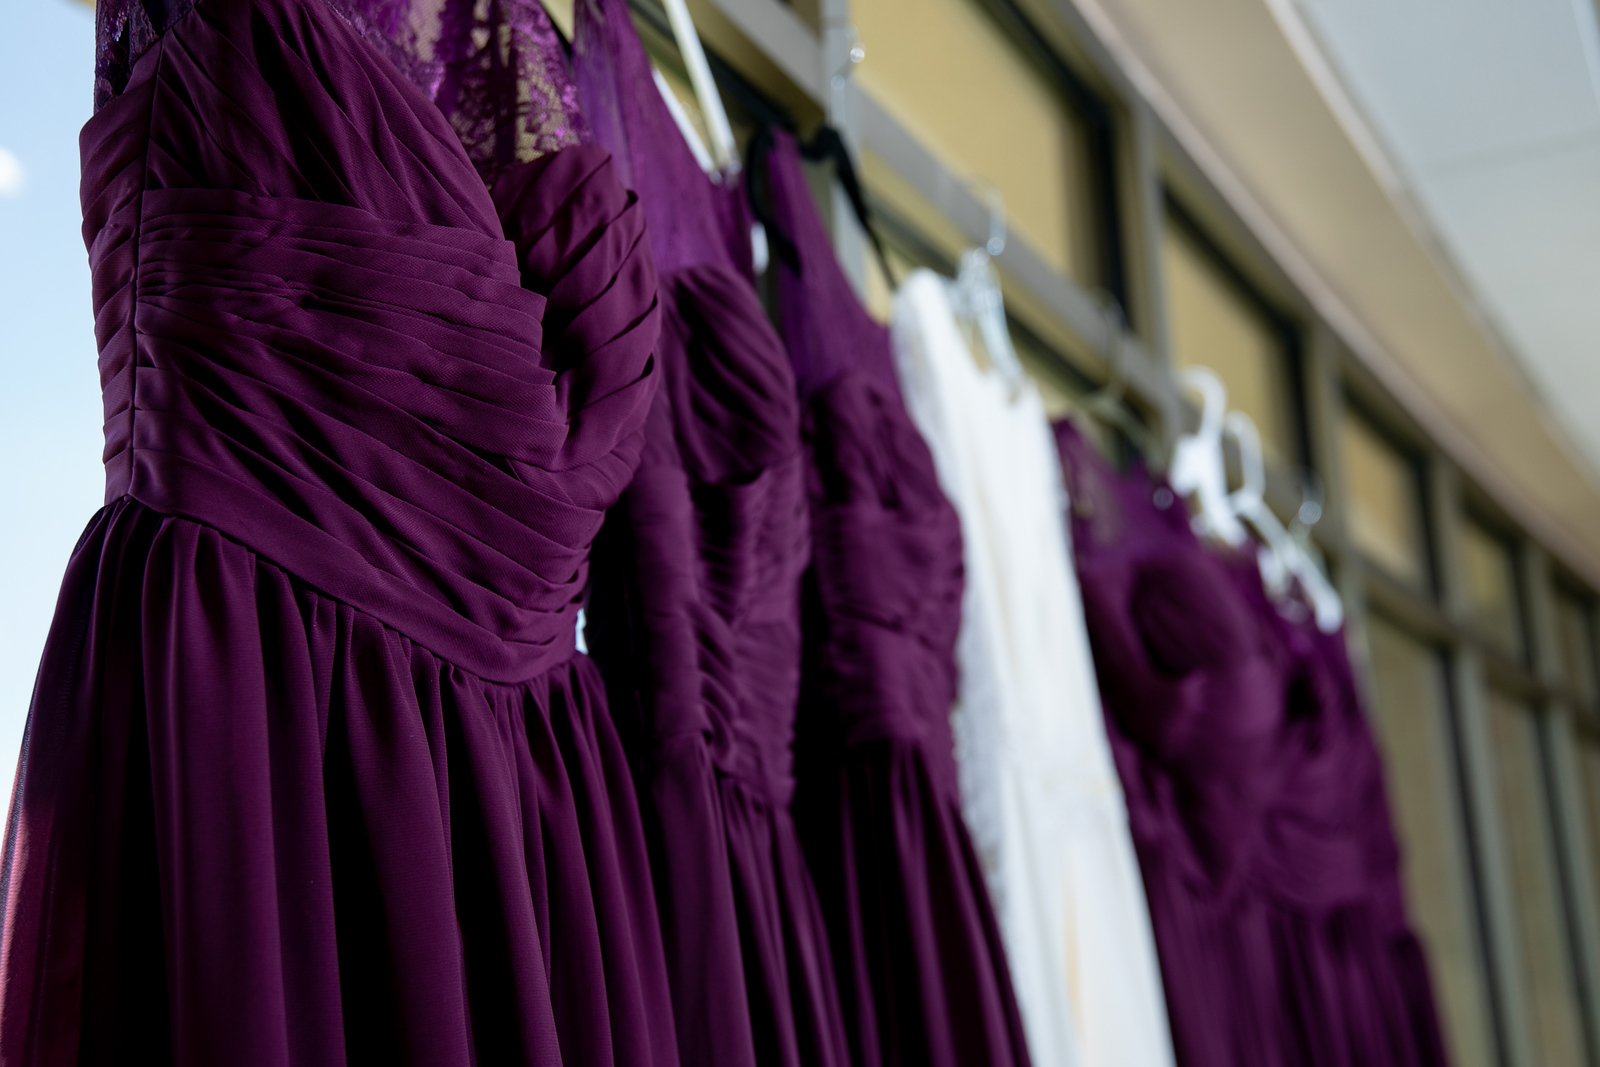 purple bridesmaids' dresses hanging on hangers next to a lace wedding dress